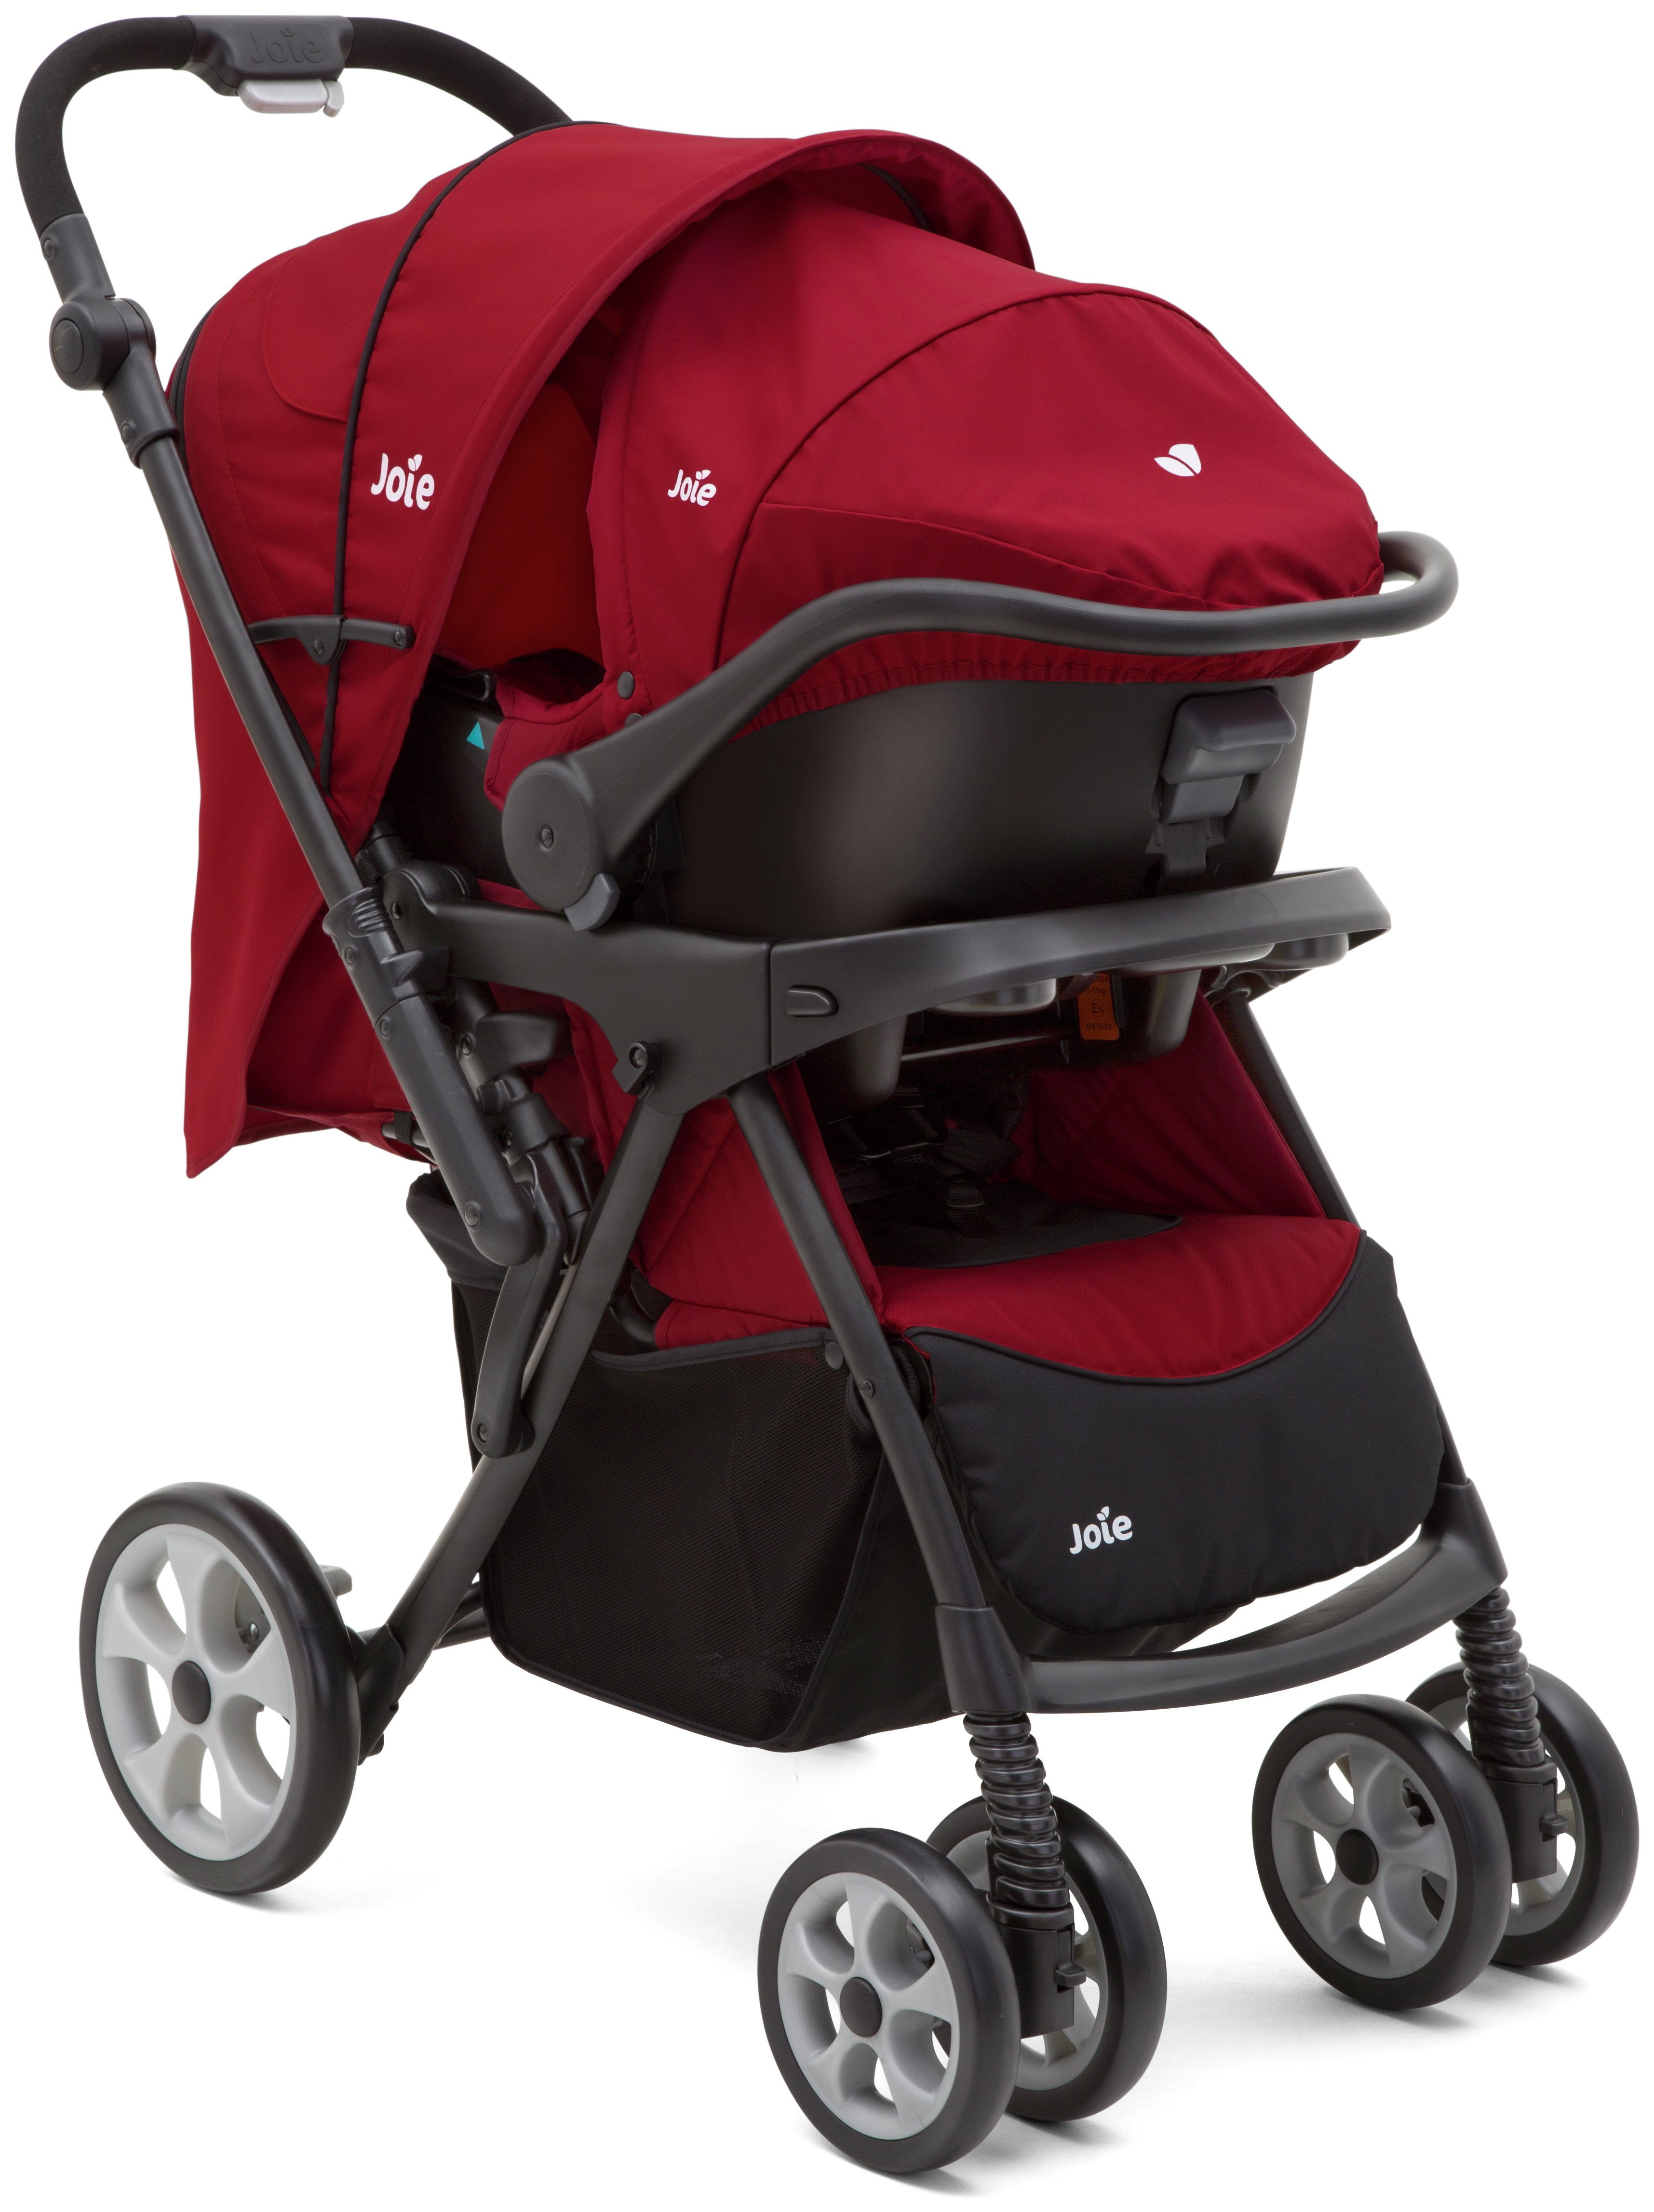 Image of Joie Extoura Travel System - Red